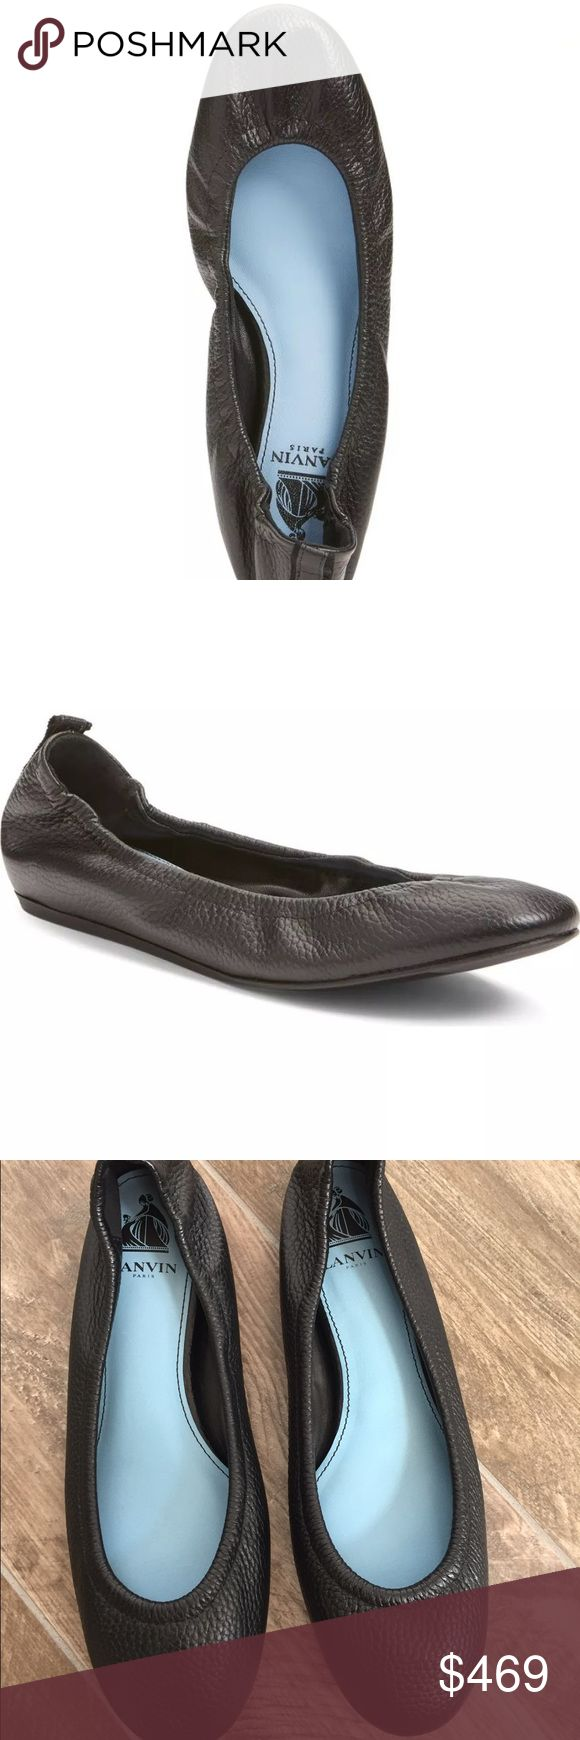 Lanvin Black Classic Leather Ballet Flats Size 40 Lanvin Black Classic Leather Ballet Flats Size 40 Lanvin Shoes Flats & Loafers